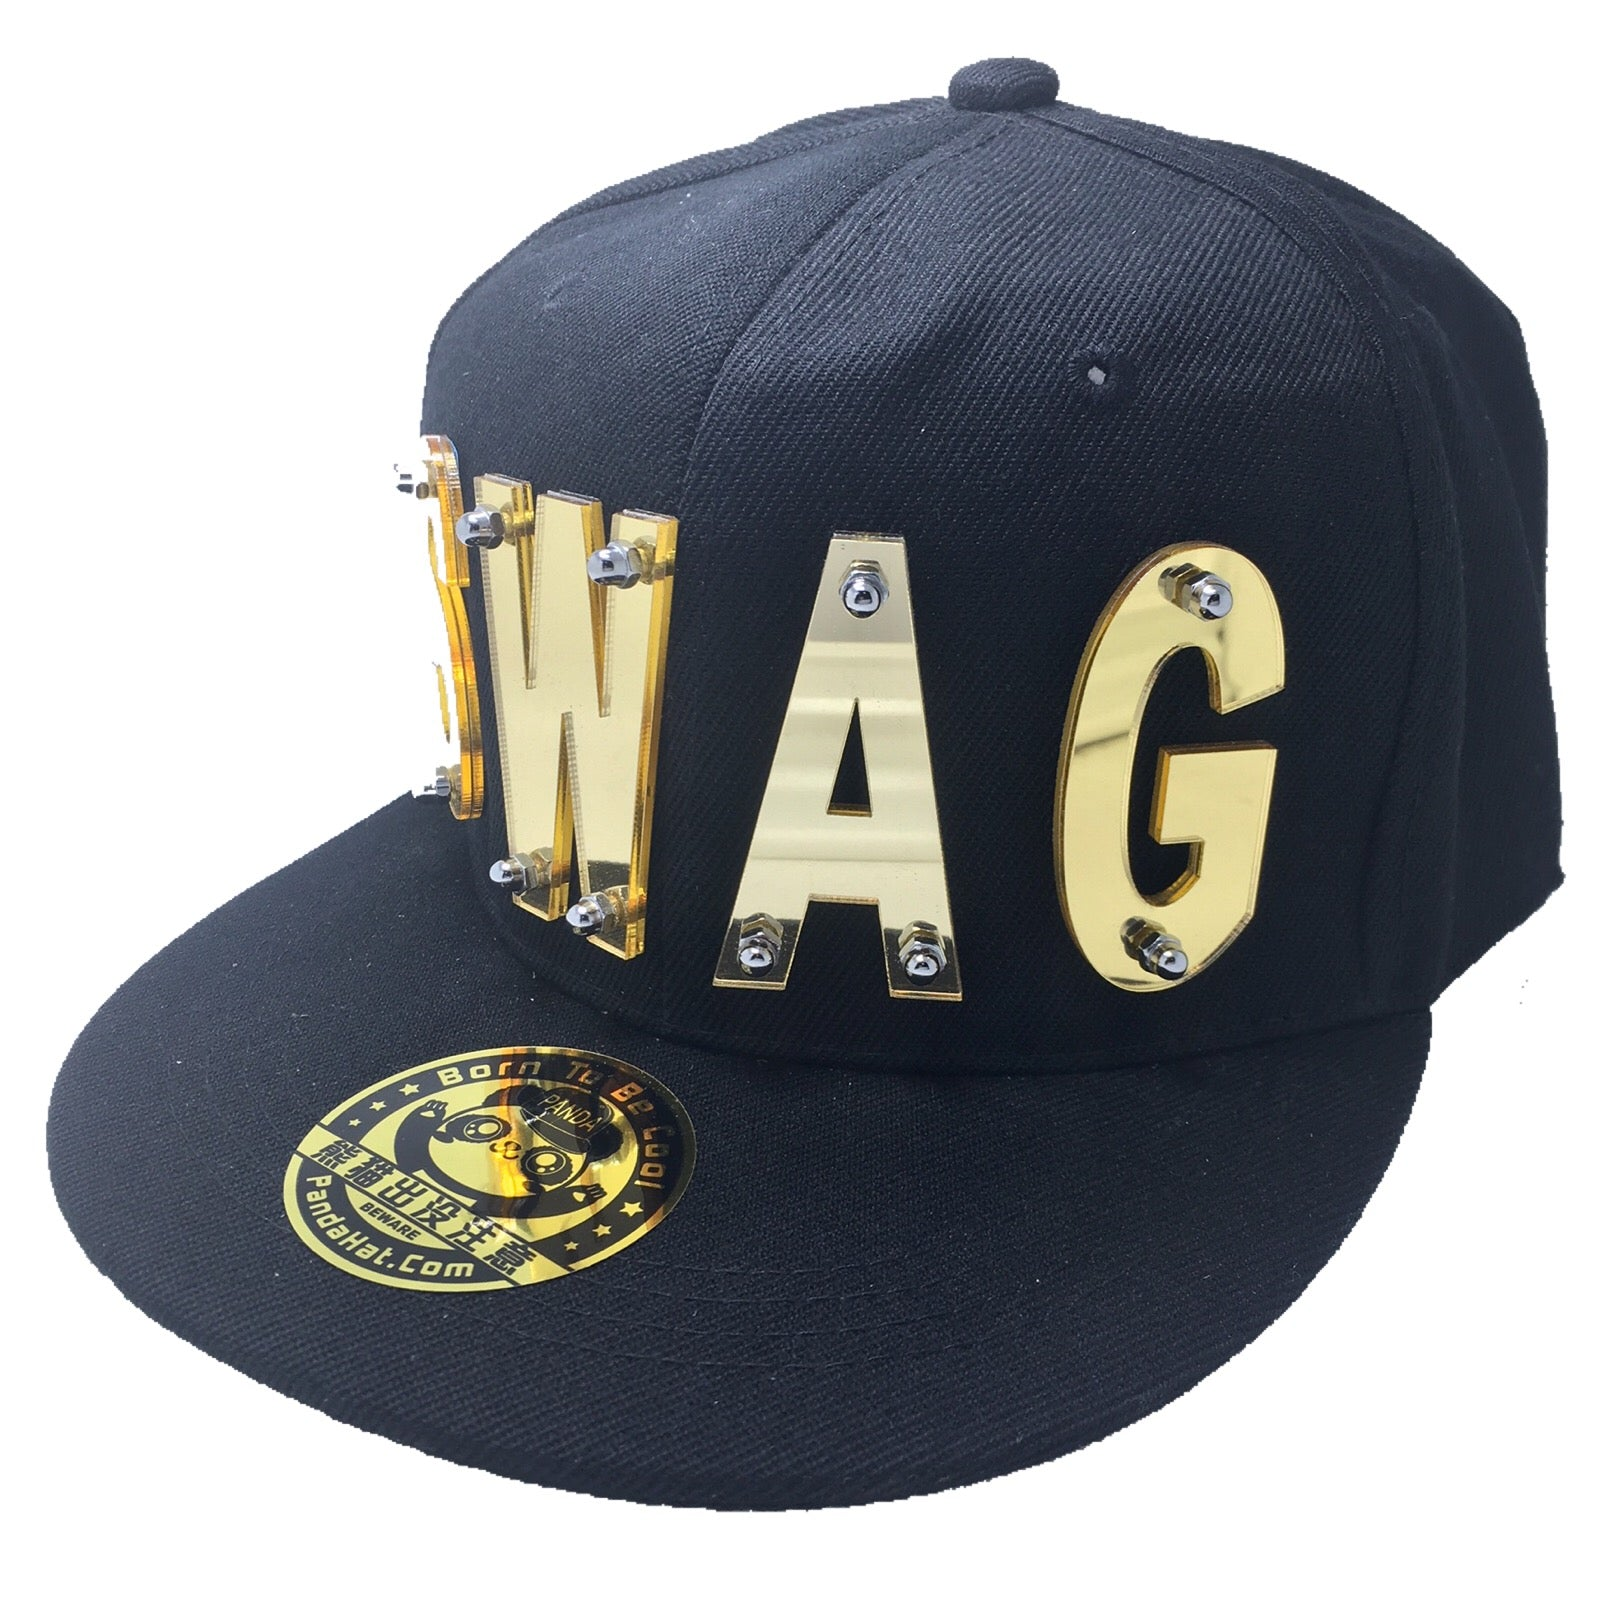 SWAG HAT IN BLACK - Pandahat 847a94a7653